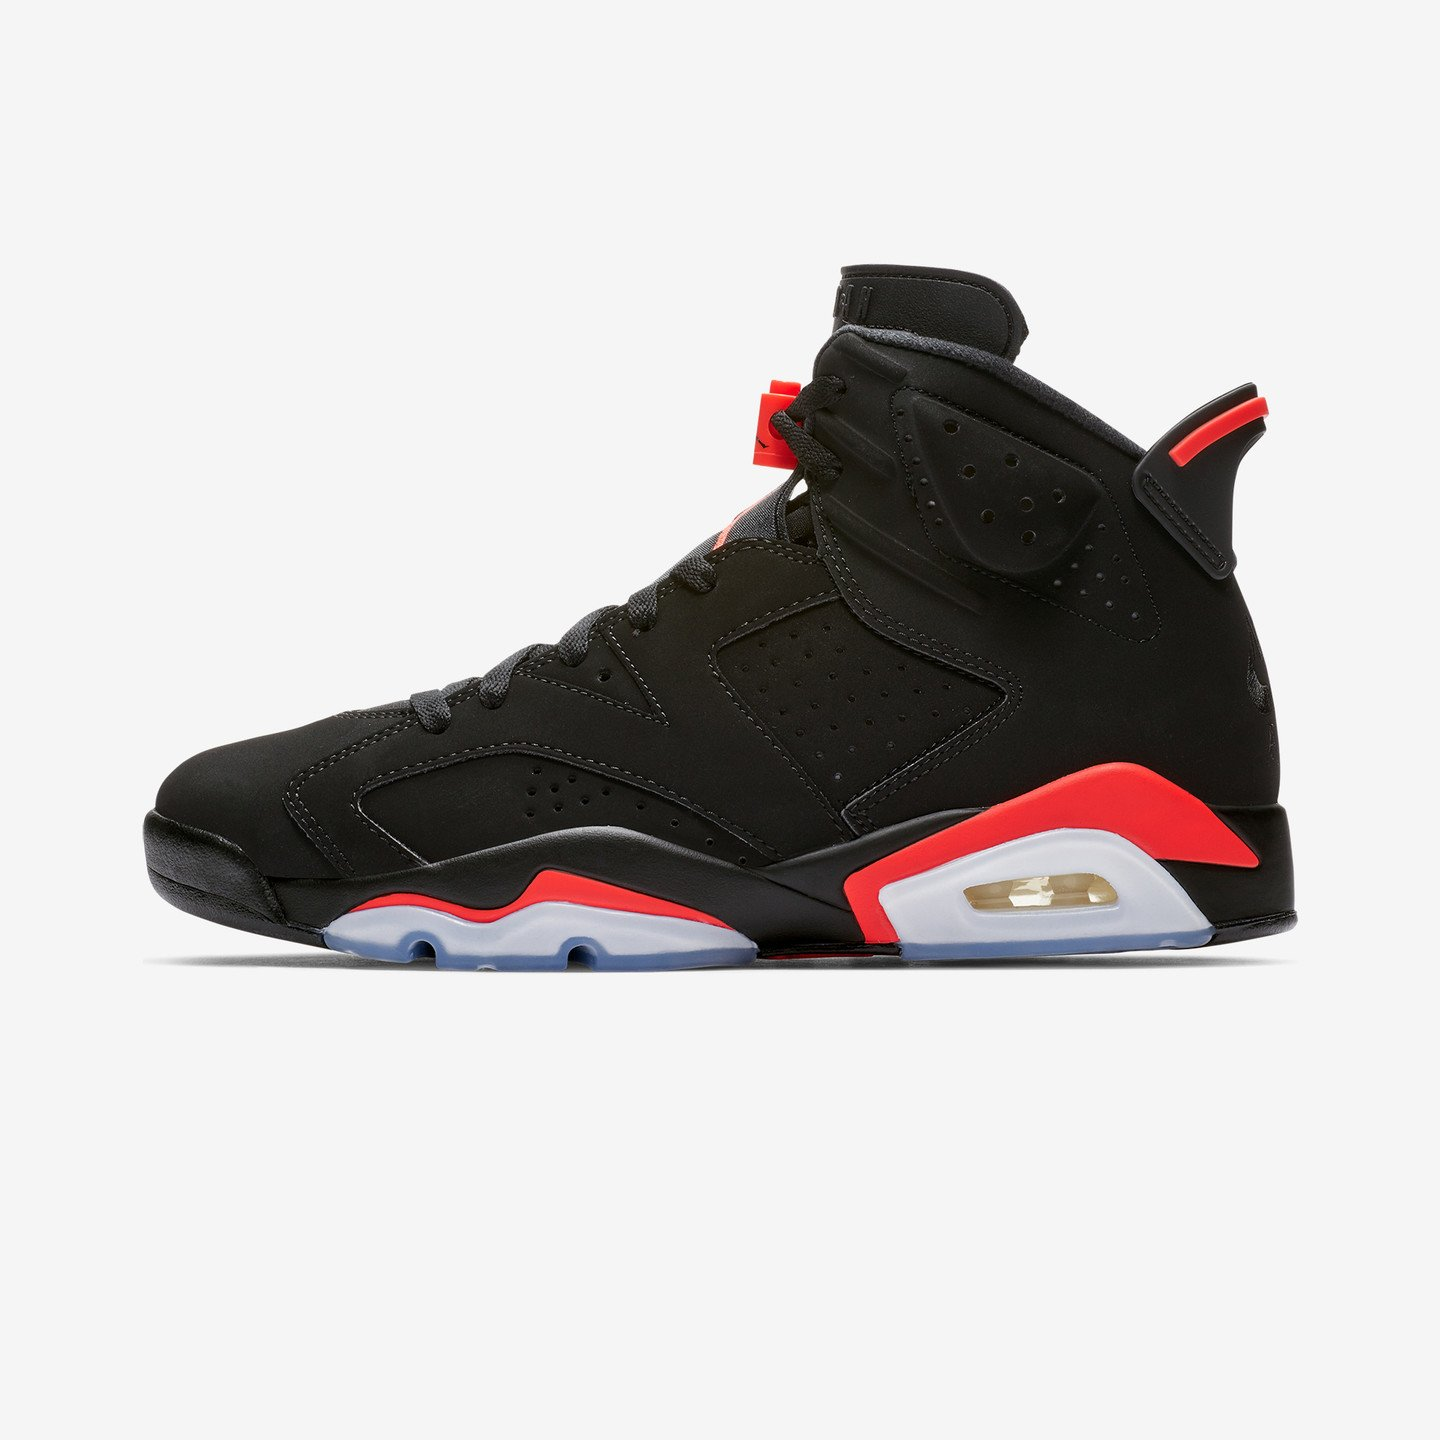 Jordan Air Jordan 6 Retro OG 'Infrared' Black / Infrared 384664-060